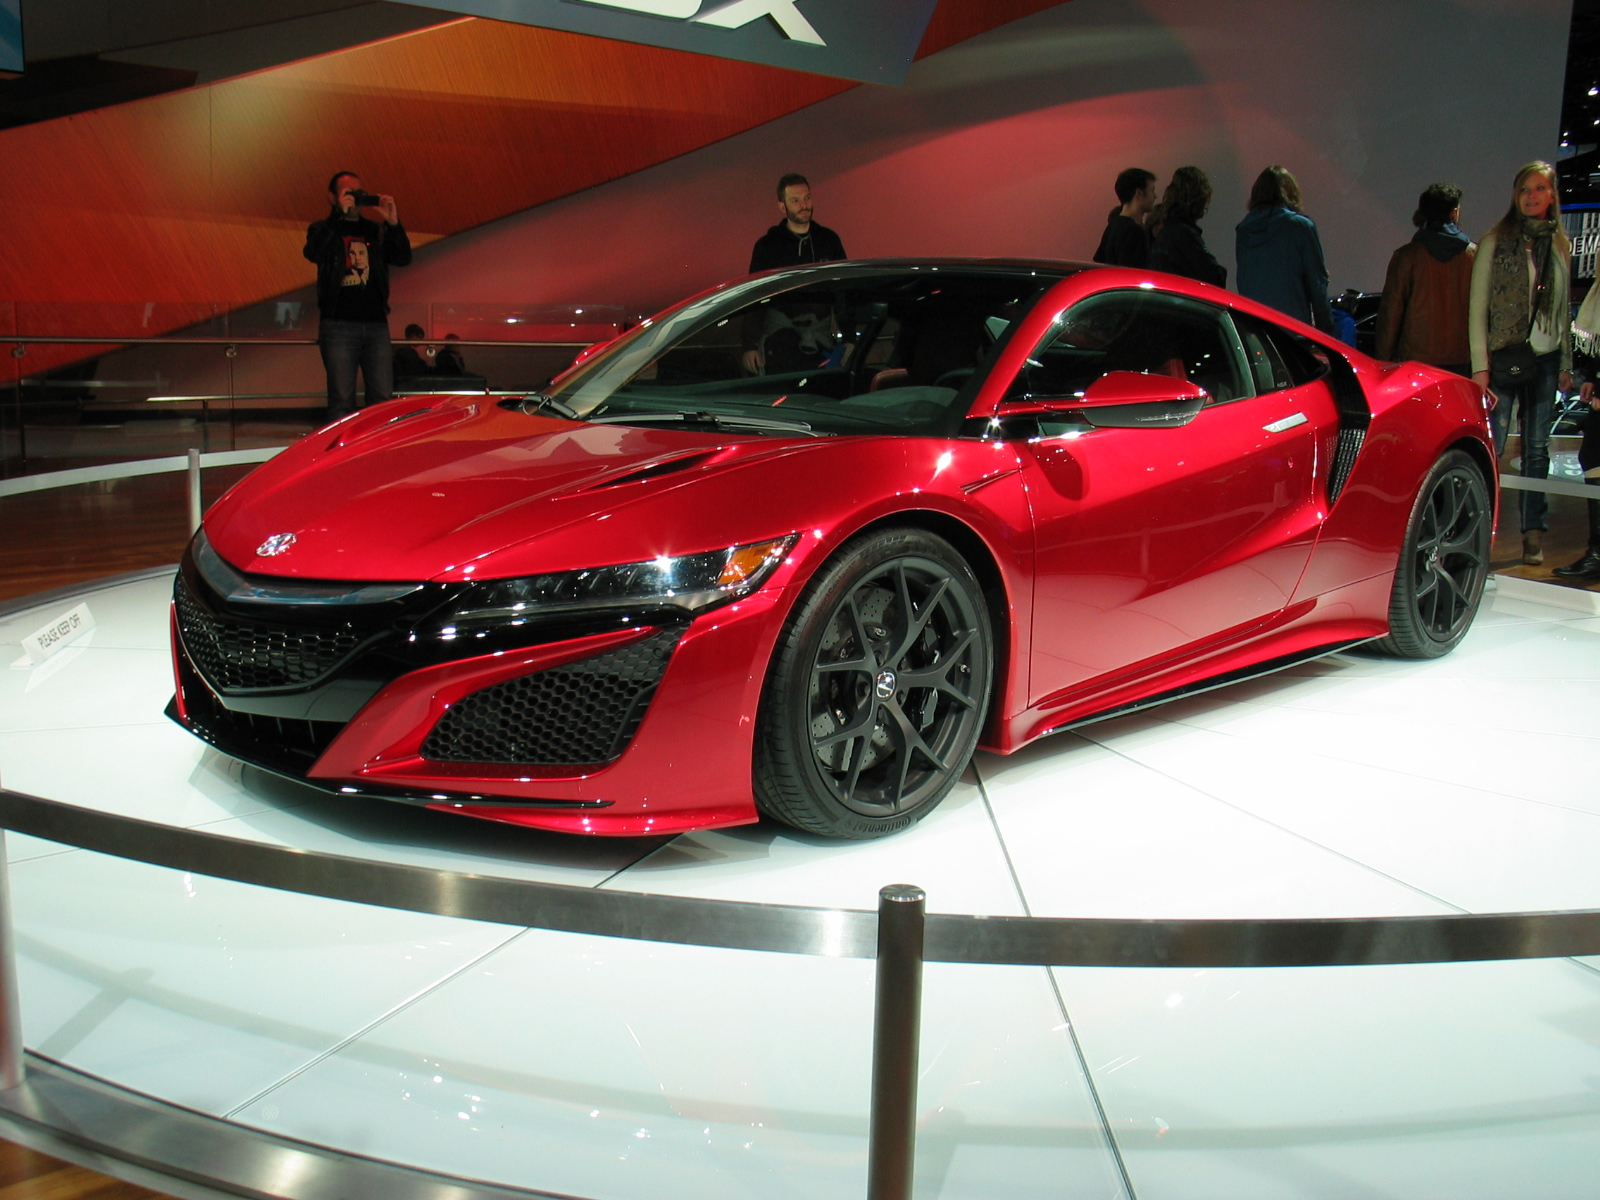 2000 Honda Nsx cabrio (na) - pictures, information and ...